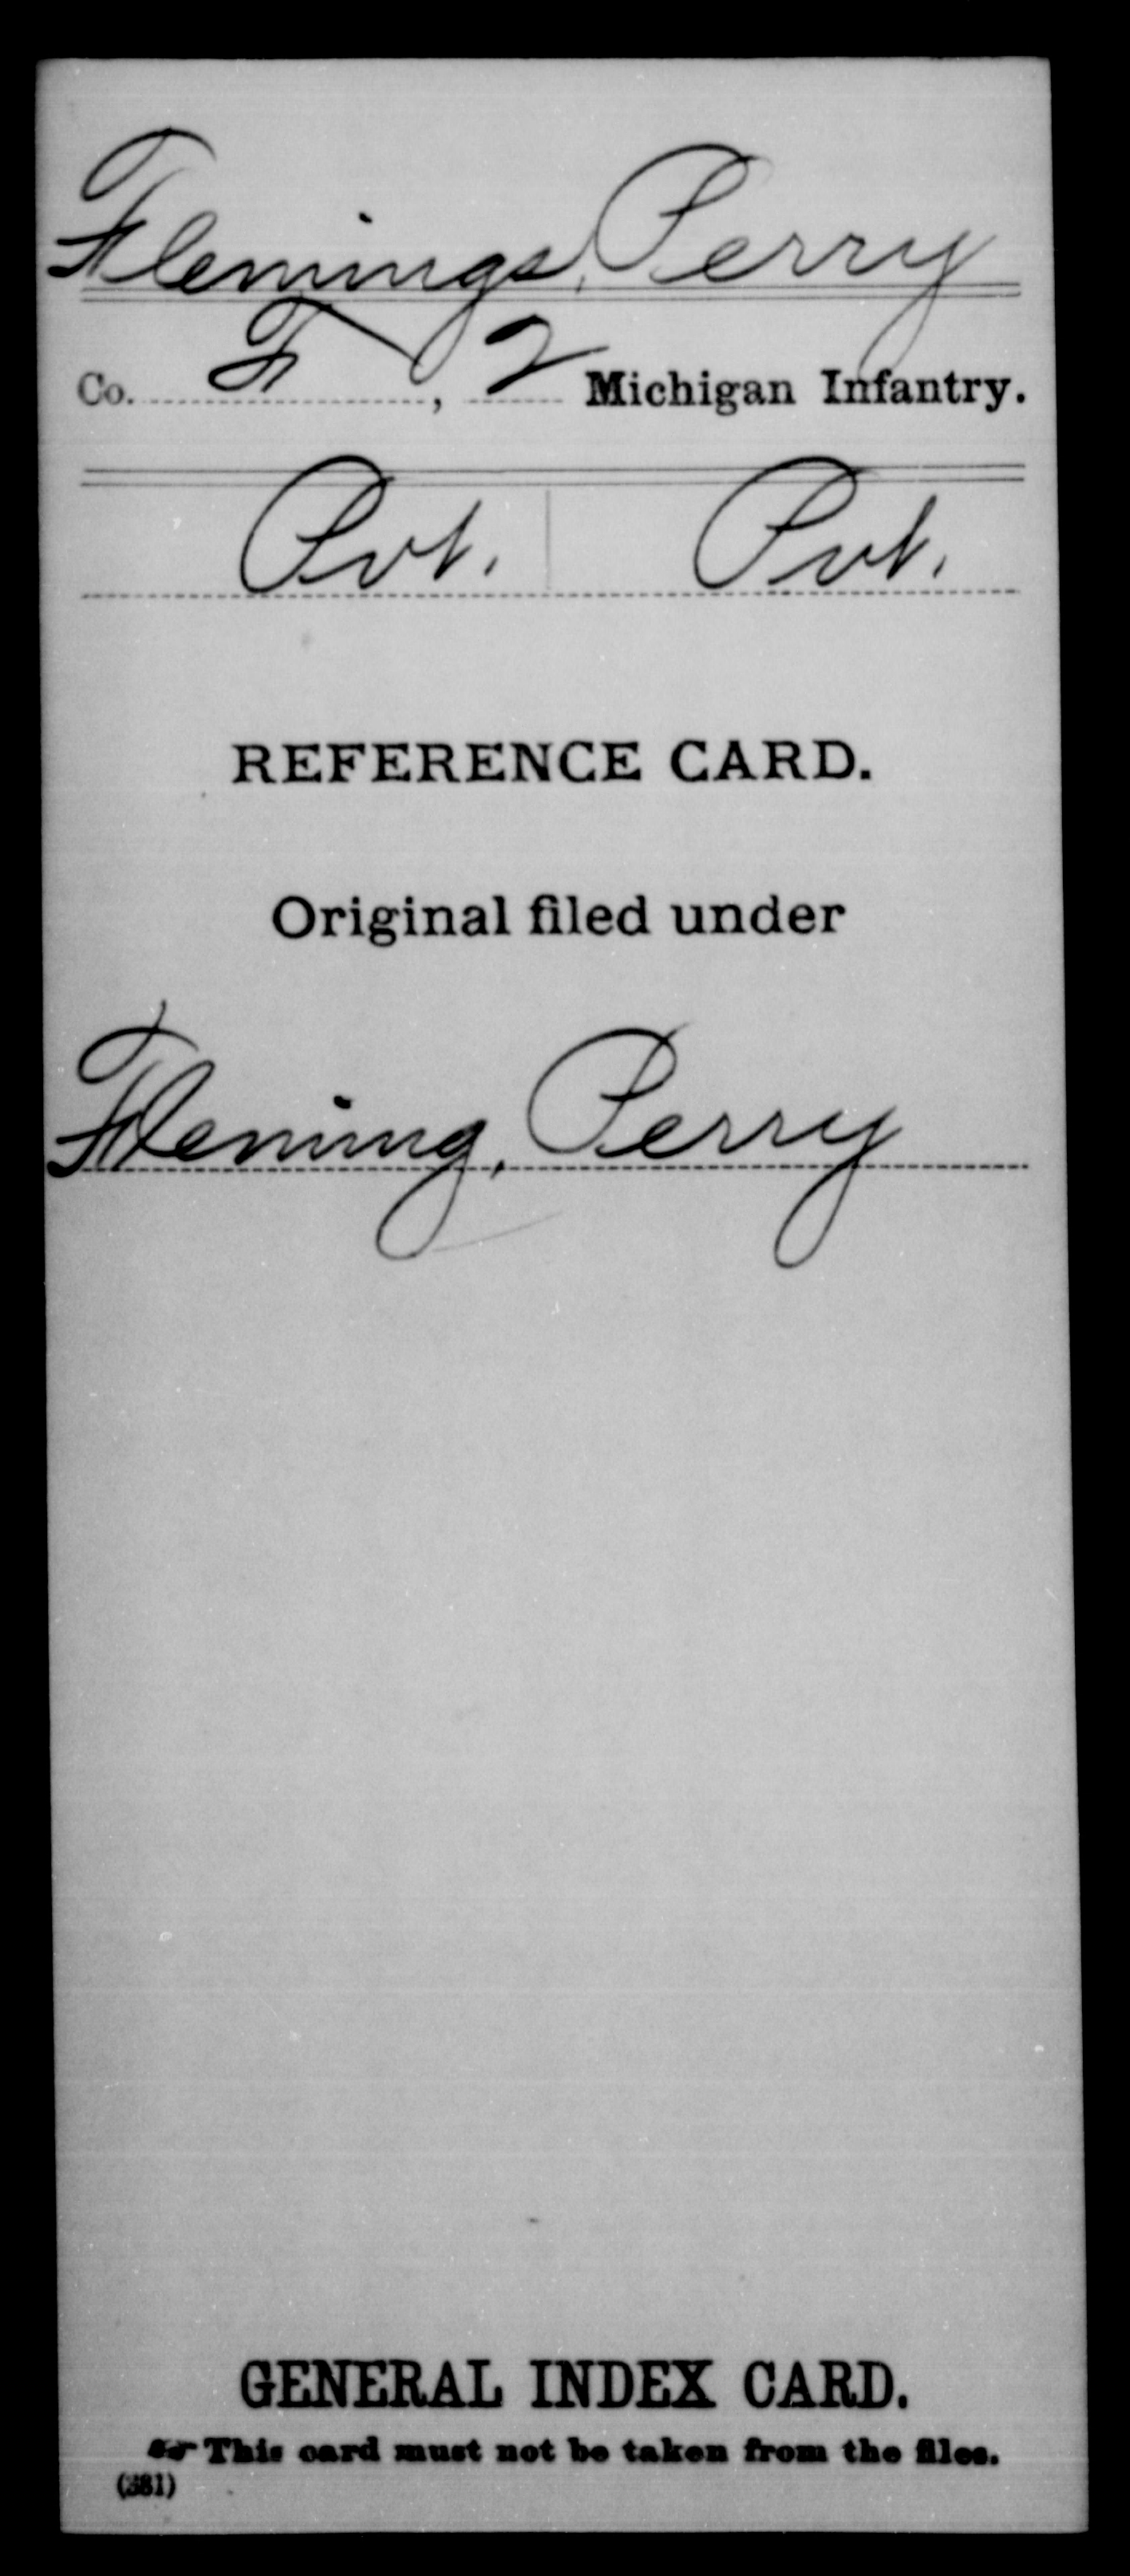 Flemings, Perry - Unit: 2nd Infantry, Company: F - Enlistment Rank: Pvt, Discharge Rank: Pvt